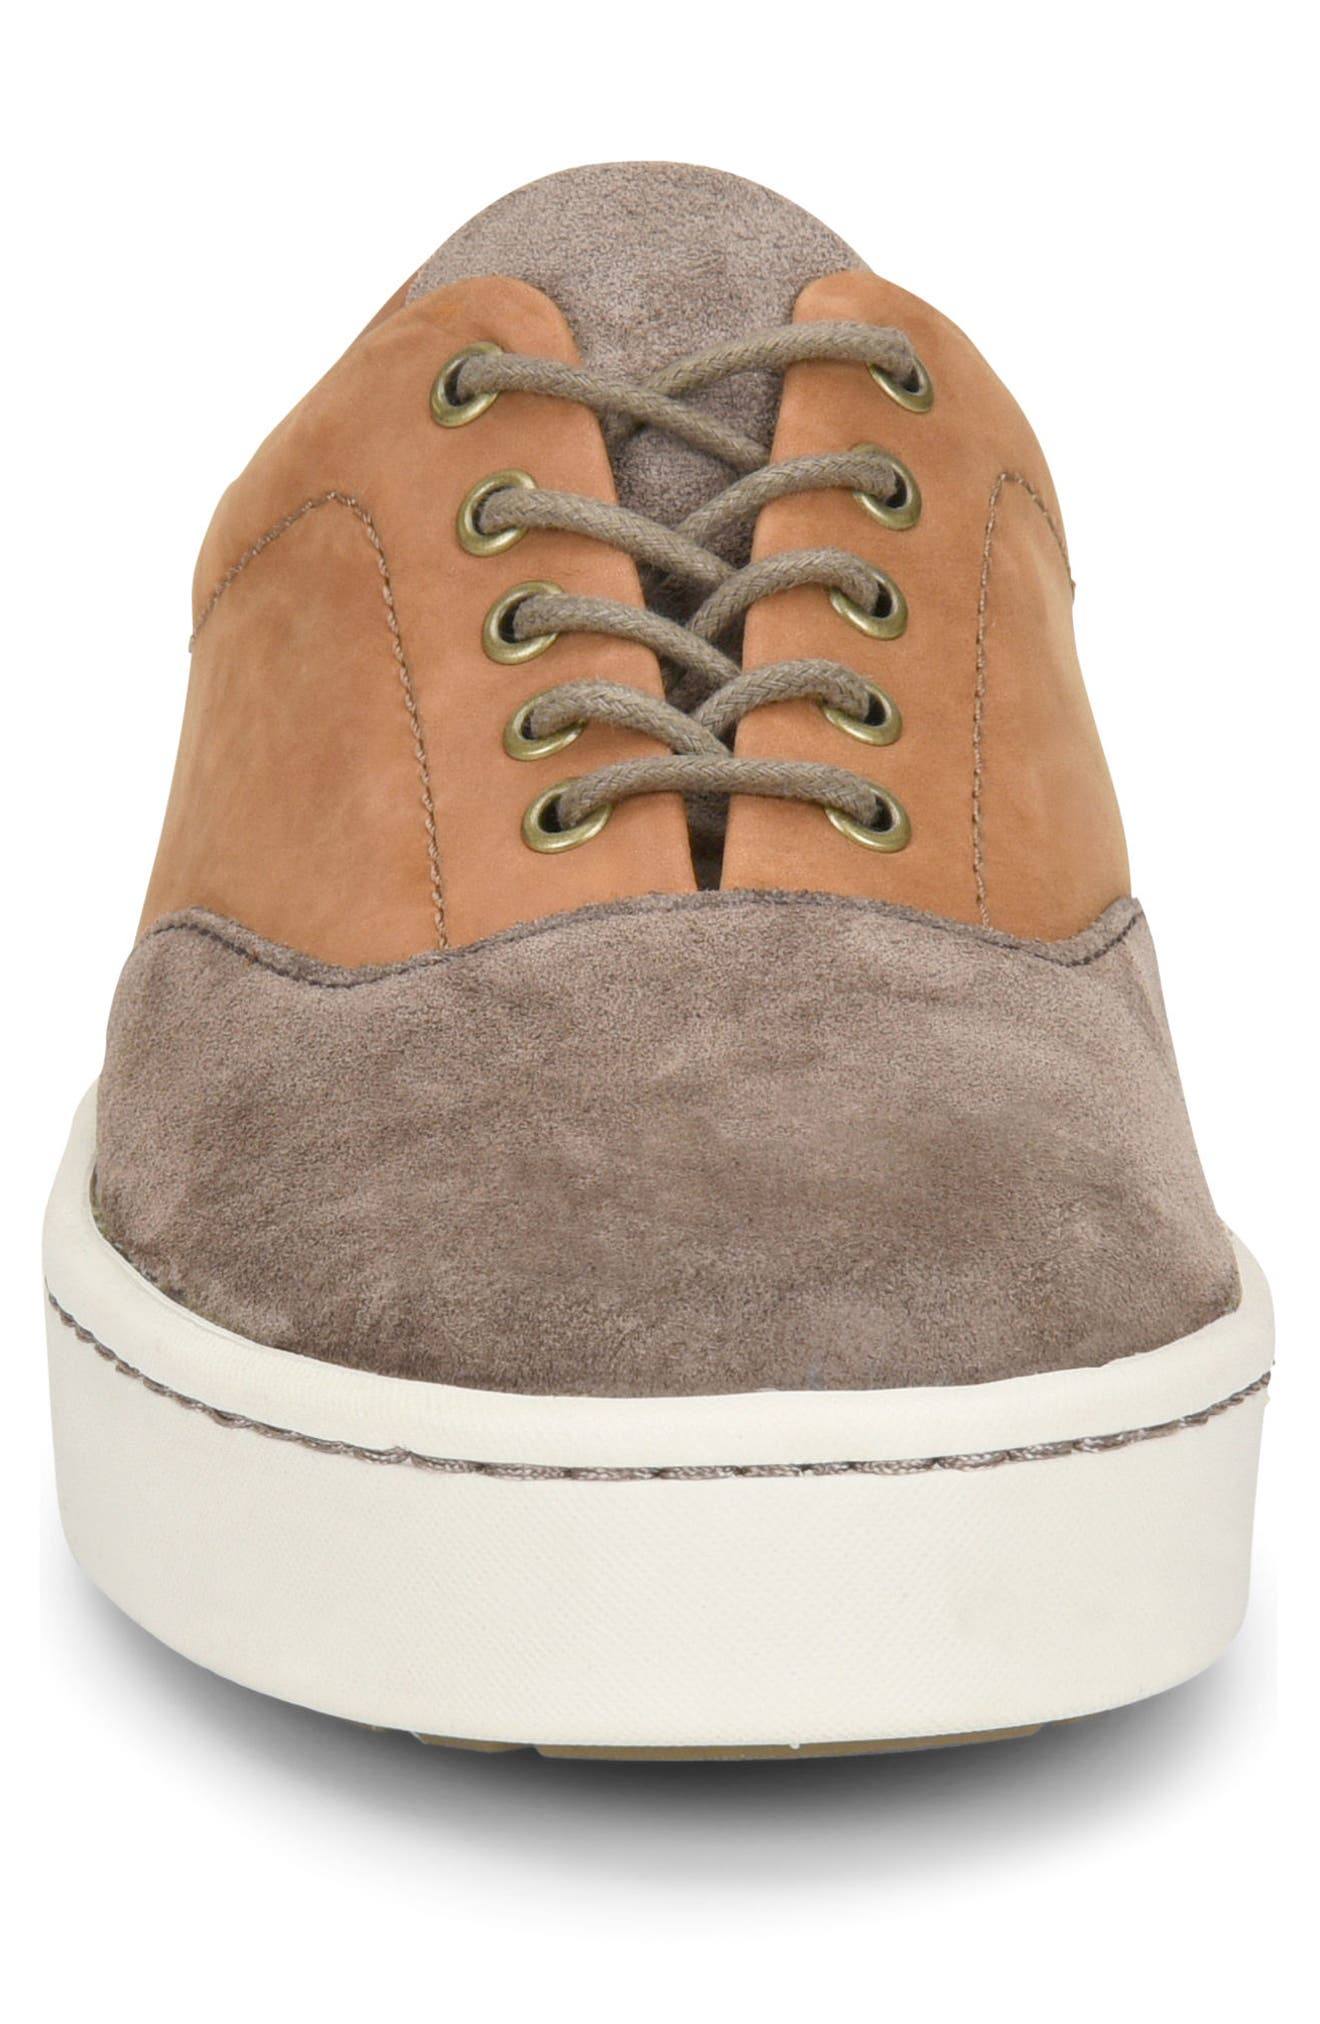 Keystone Low Top Sneaker,                             Alternate thumbnail 4, color,                             Taupe Leather